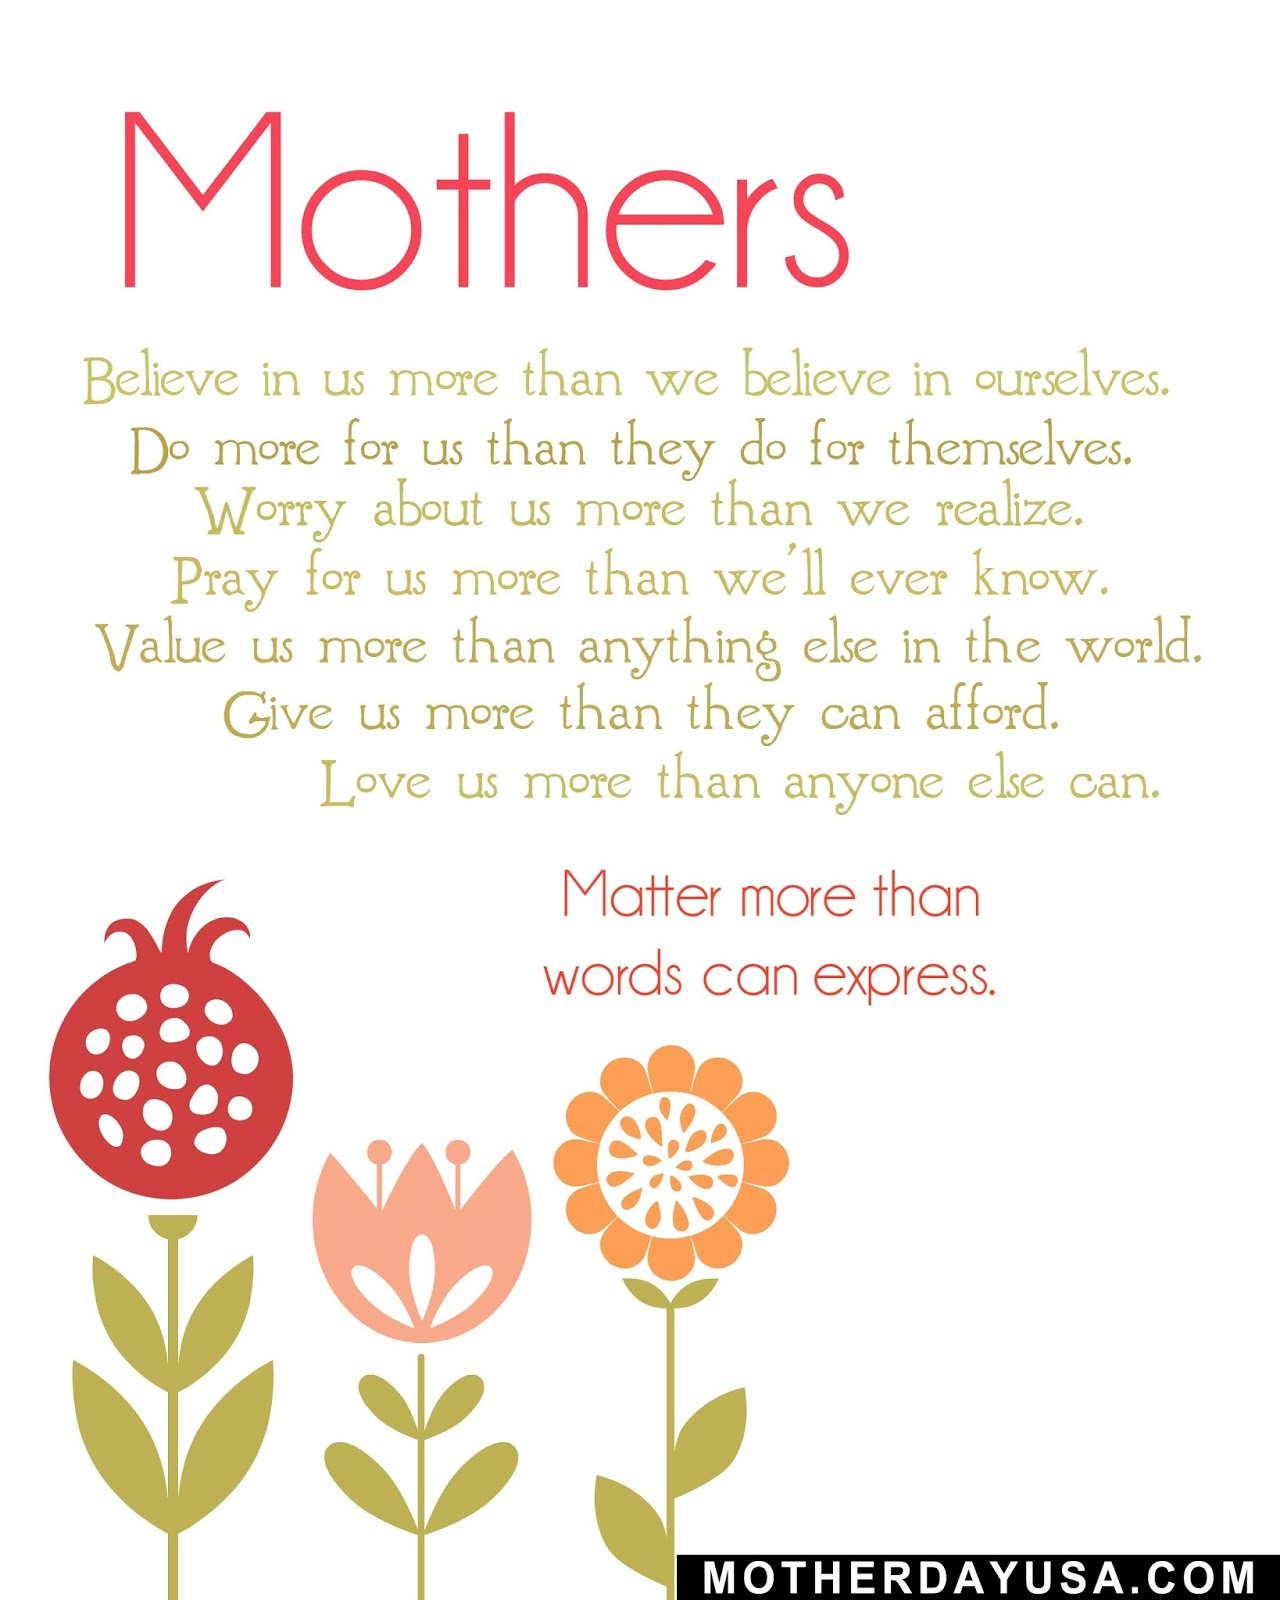 Happy Mothers Day 2019 Quotes, Images, Poetry, Poems, Gifts